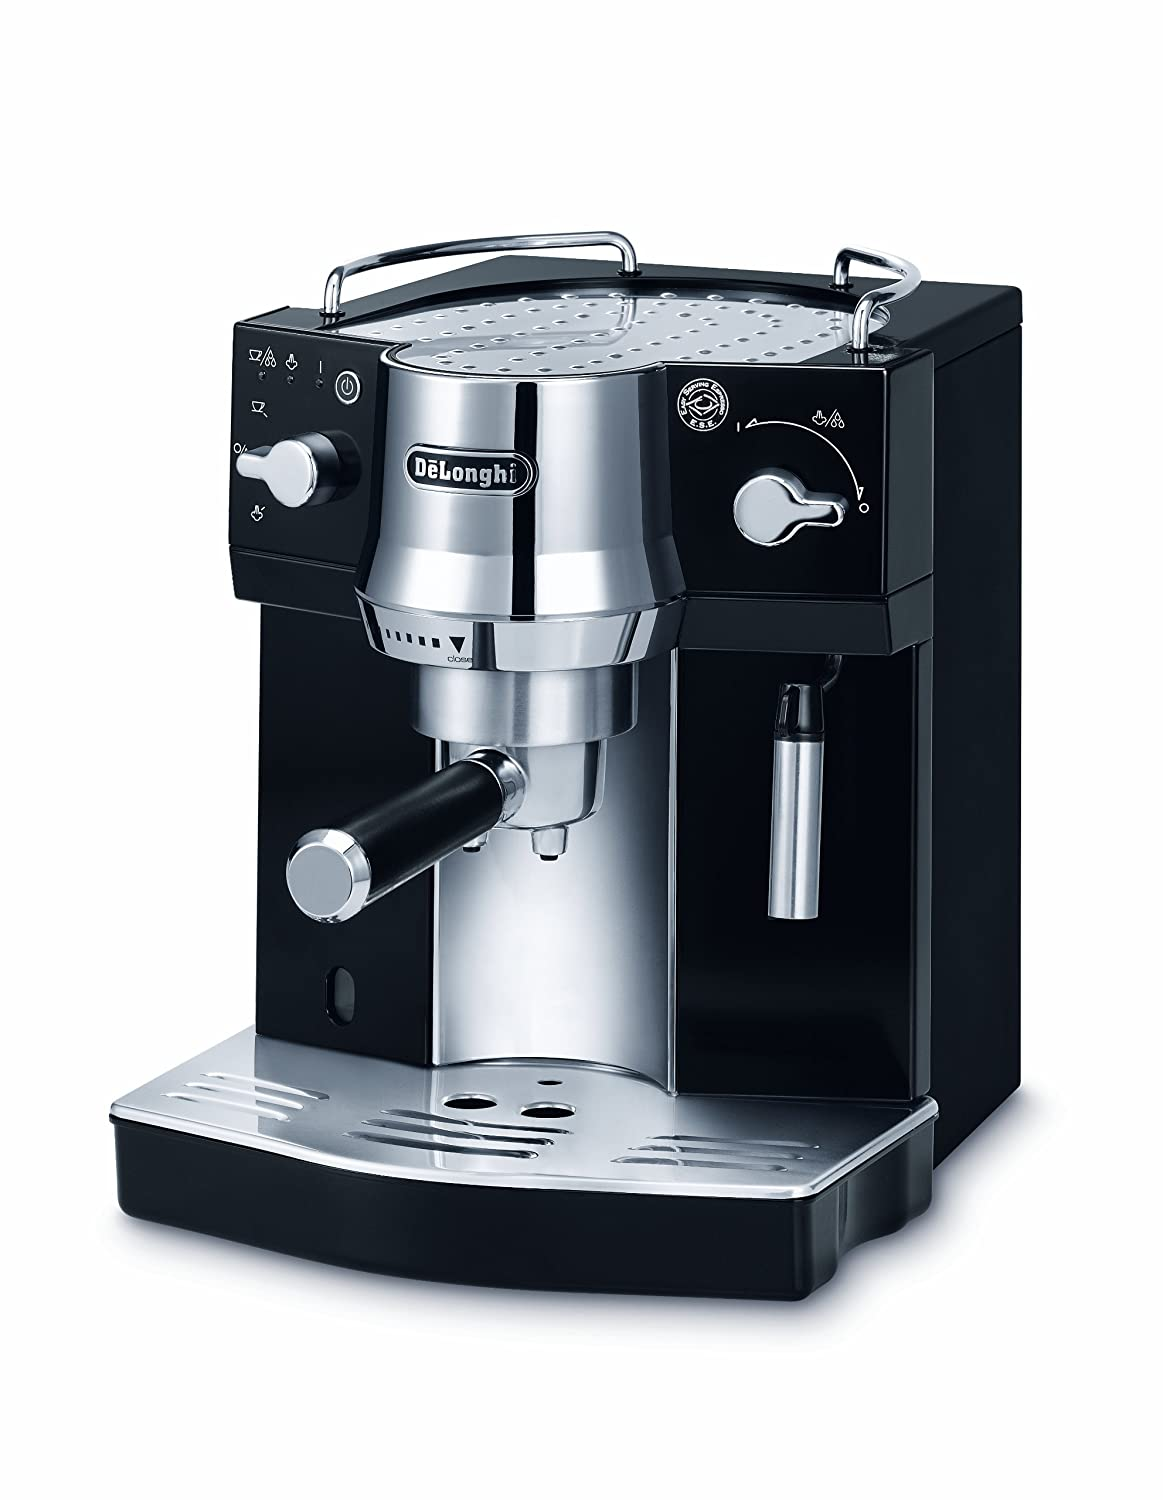 Delonghi Coffee Maker Ec7 : De Longhi Pump Espresso Coffee Machine EC820.B - Black eBay